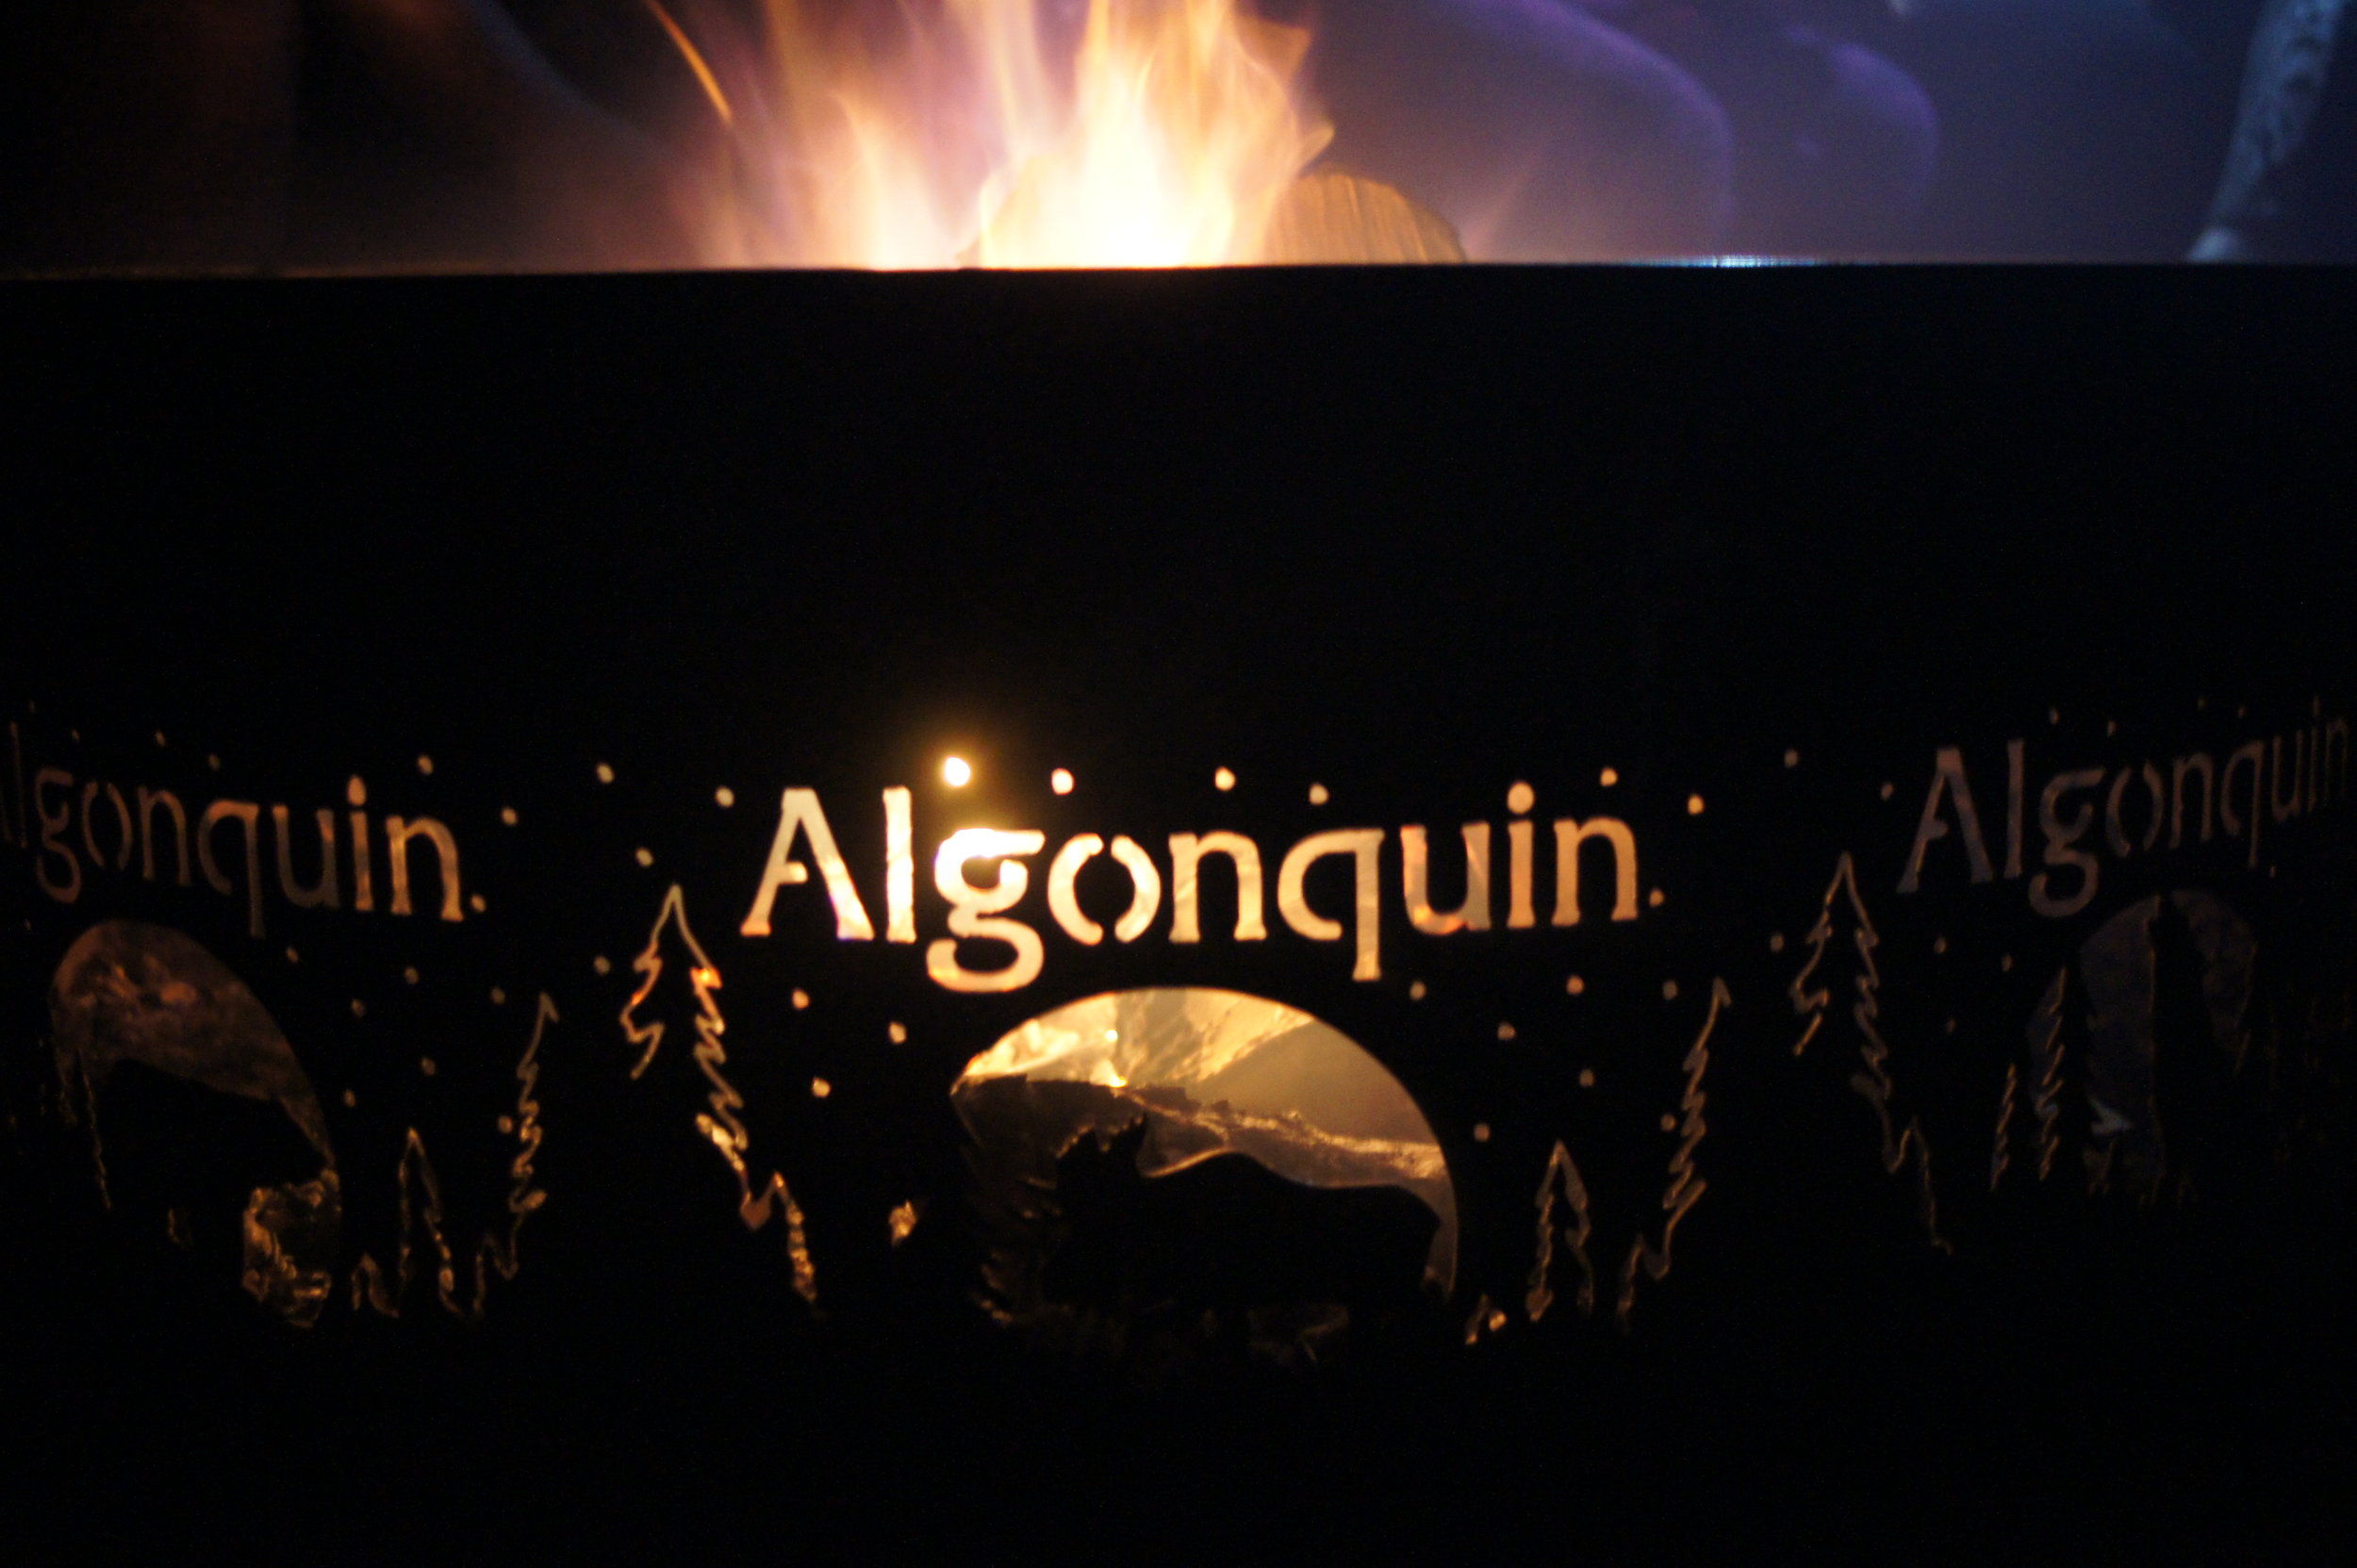 Escape Algonquin. The scouting trip for Escape was amazing and provided feedback that made the trip substantially better.